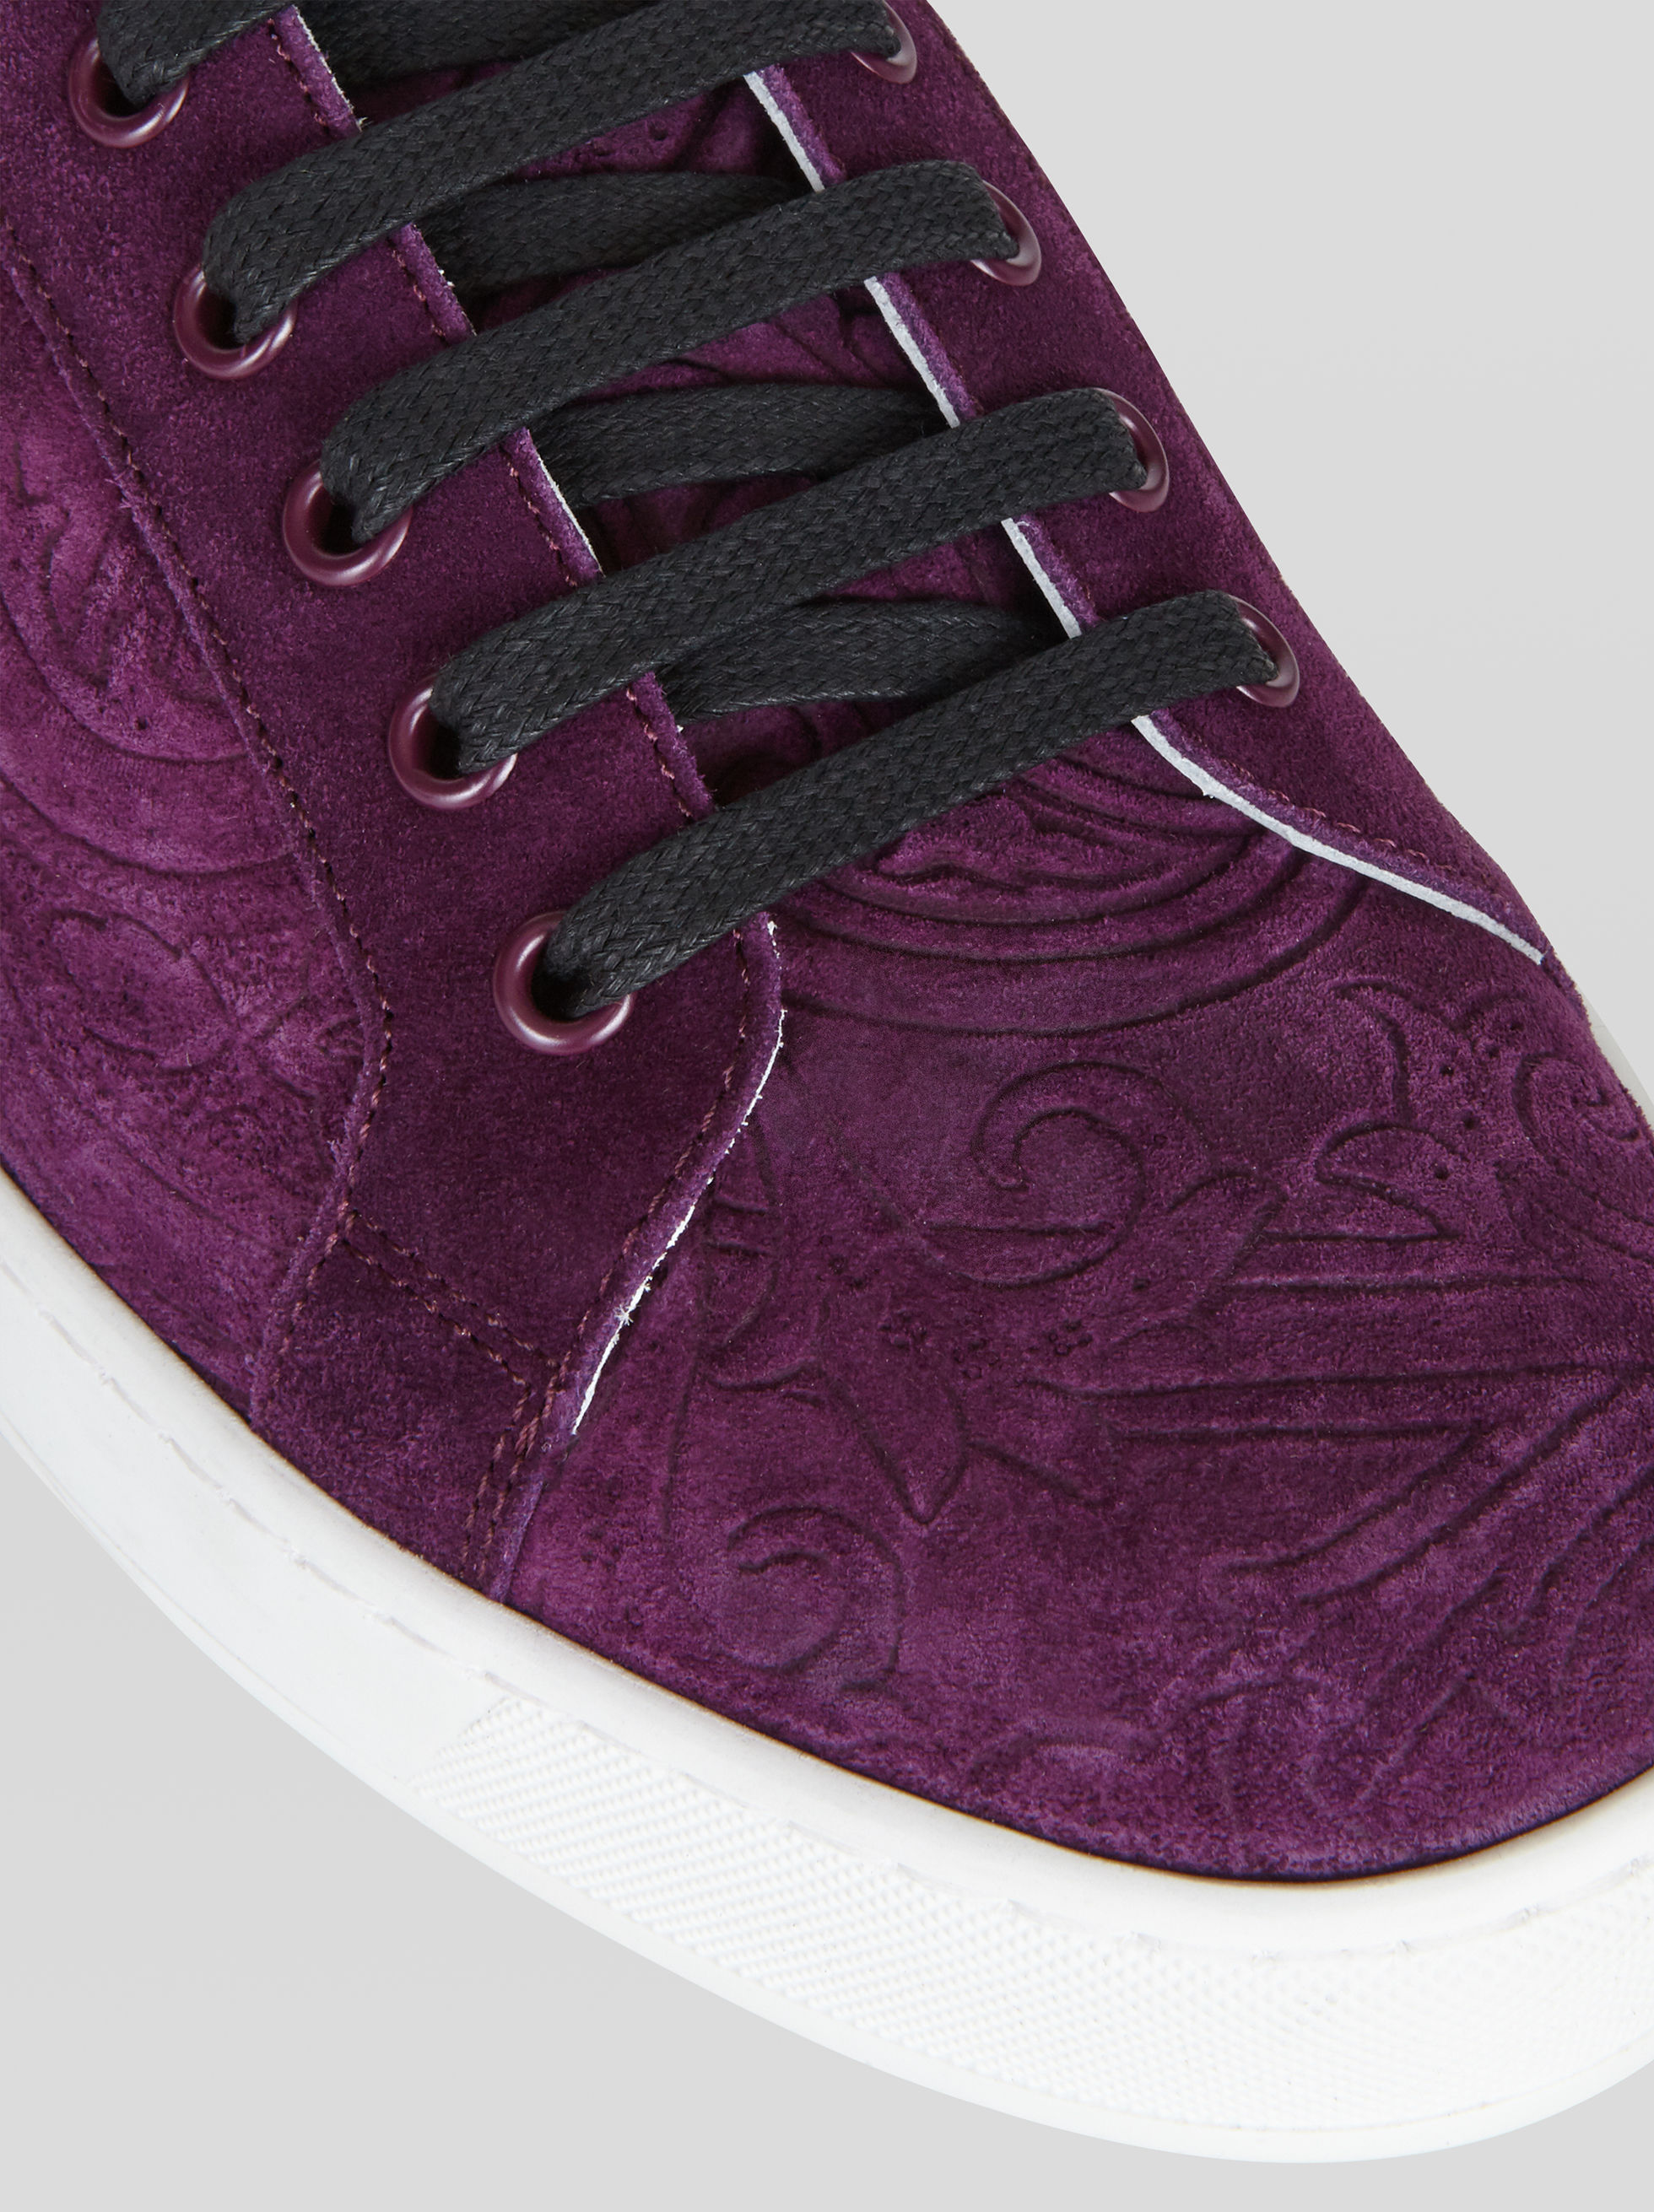 SUEDE SNEAKERS WITH PAISLEY PATTERN